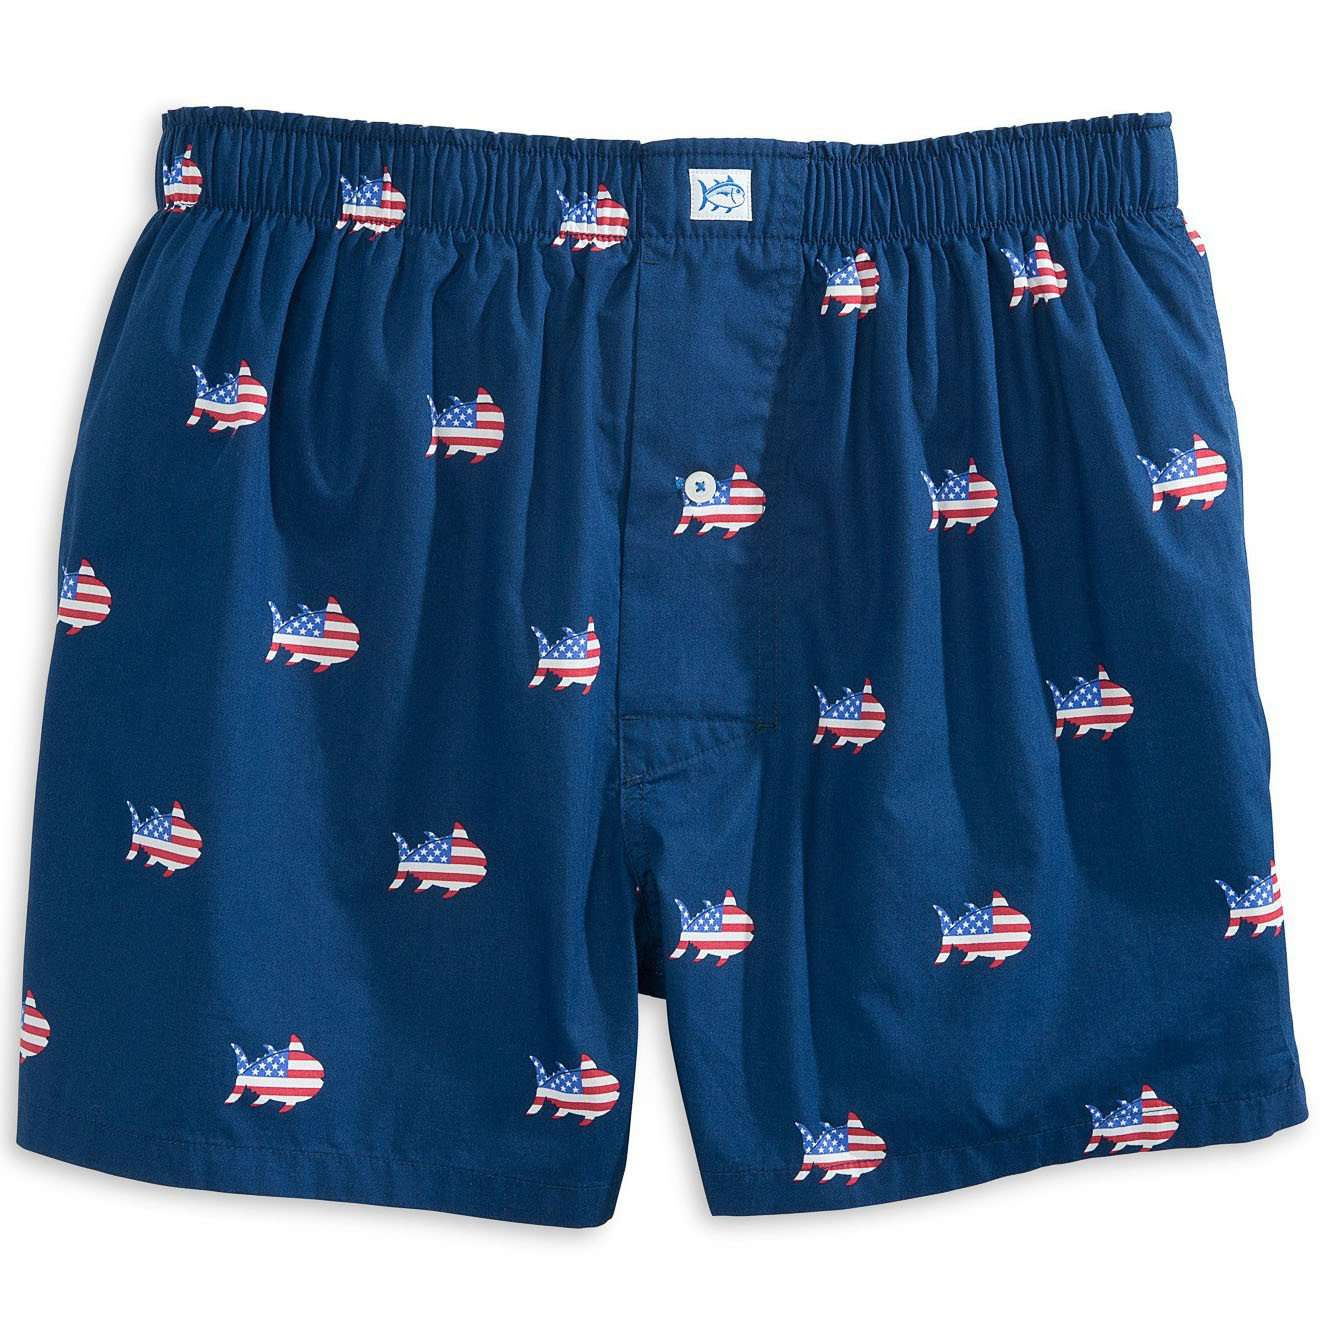 Men's Loungewear/Boxers - Oh Say Can You Sea Boxer In Yacht Blue By Southern Tide